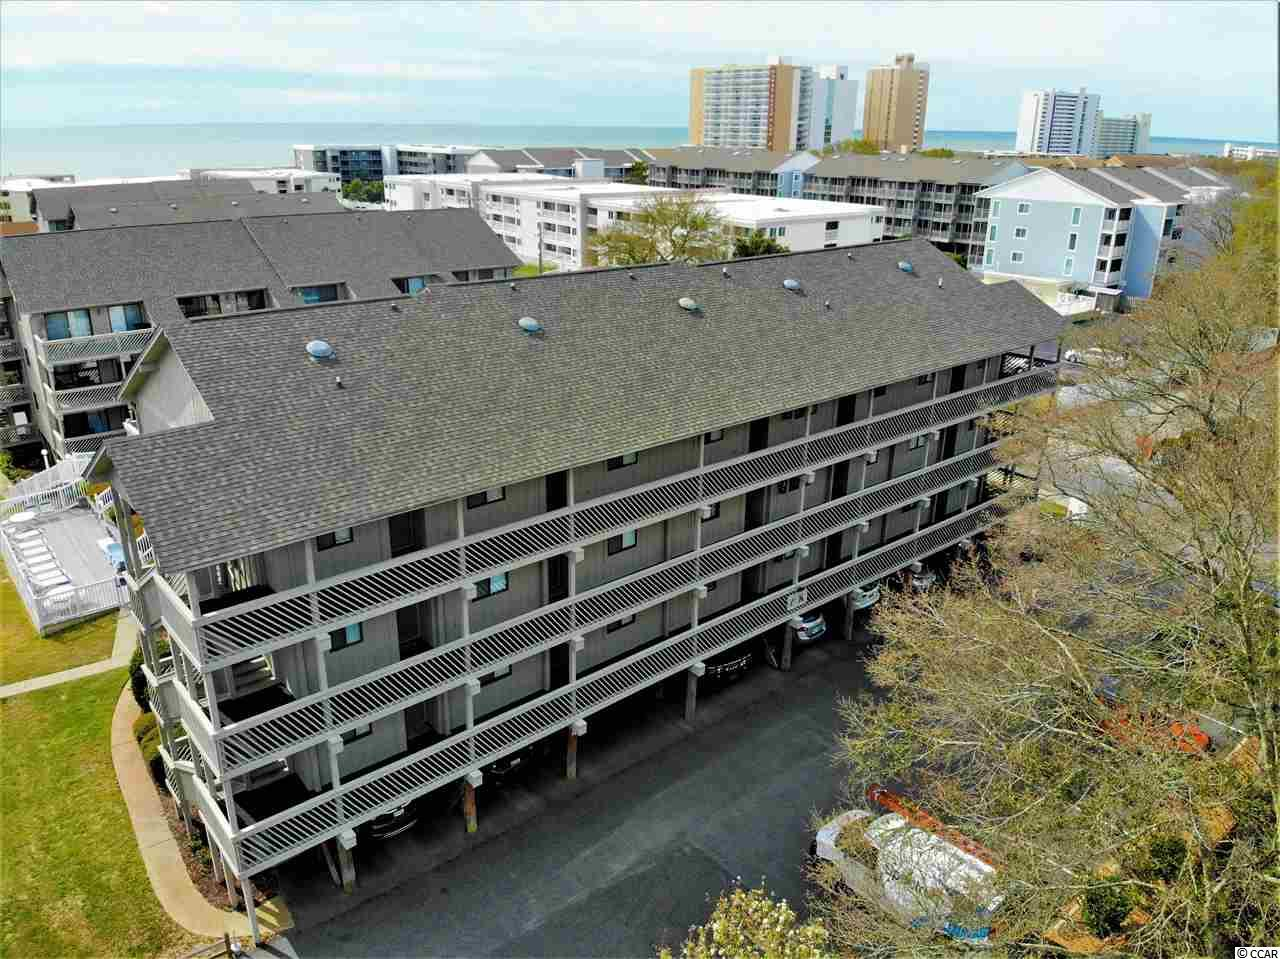 Location Location Location. Relax and breathe in the ocean air from your private balcony overlooking the courtyard, or catch some sun rays at the beach or in the community pool. Enjoy an evening cookout at the community grilling station. Relax in the large whirlpool after a tough round of golf, or take a dip in the heated indoor pool. Shipwatch Pointe is a 2nd row beach community close to everything Myrtle Beach has to offer, especially the Beach! This 1 bed 1 bath condo being sold furnished would make the perfect home, vacation home or investment property. Located in the Shore Drive resort section of Myrtle Beach, the property is close to golf, shopping at the Tanger Outlets, Barefoot Landing, The Carolina Opry and so much more. Don't miss out on your chance to live your dream of owning a your very own place at the beach. All measurements are approximate and not guaranteed. Verification is the responsibility of the buyer.